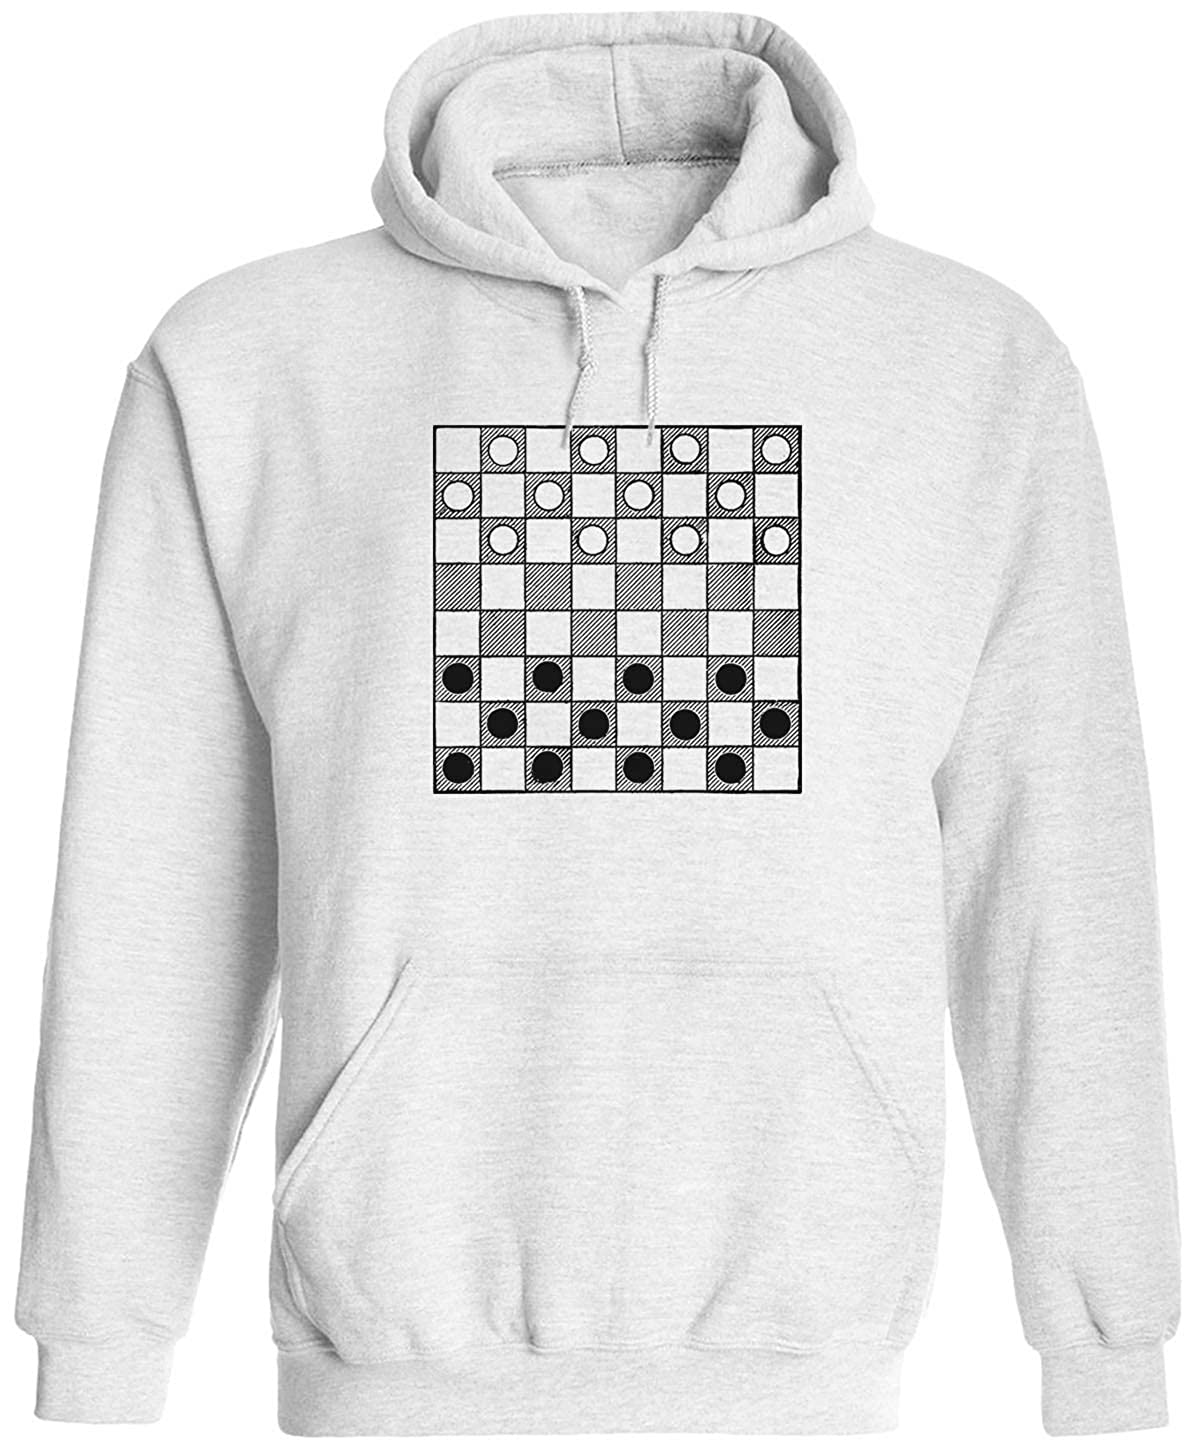 Austin Ink Apparel Checkers Board Unisex Adult Hooded Pullover Sweatshirt